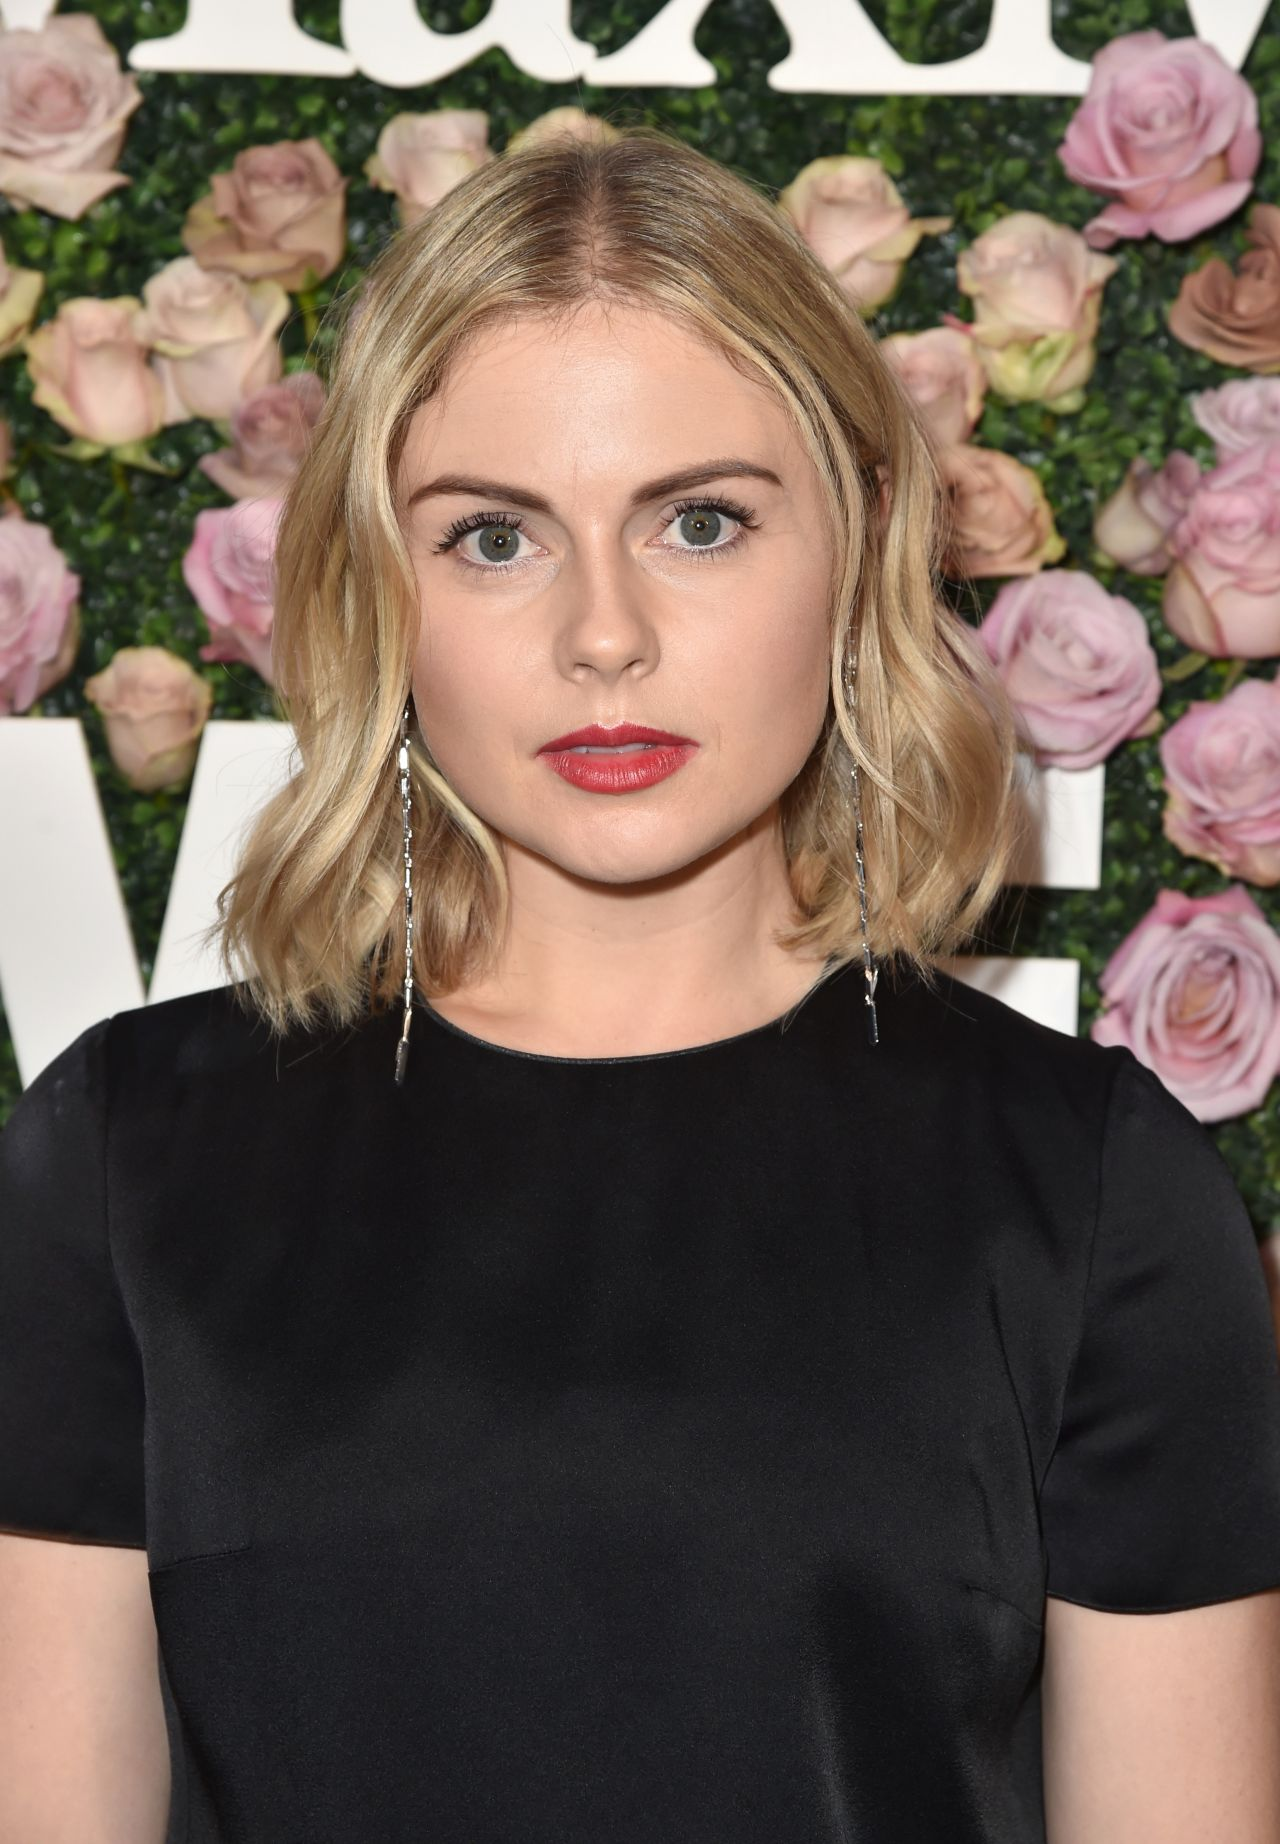 Rose McIver | RangerWiki | FANDOM powered by Wikia